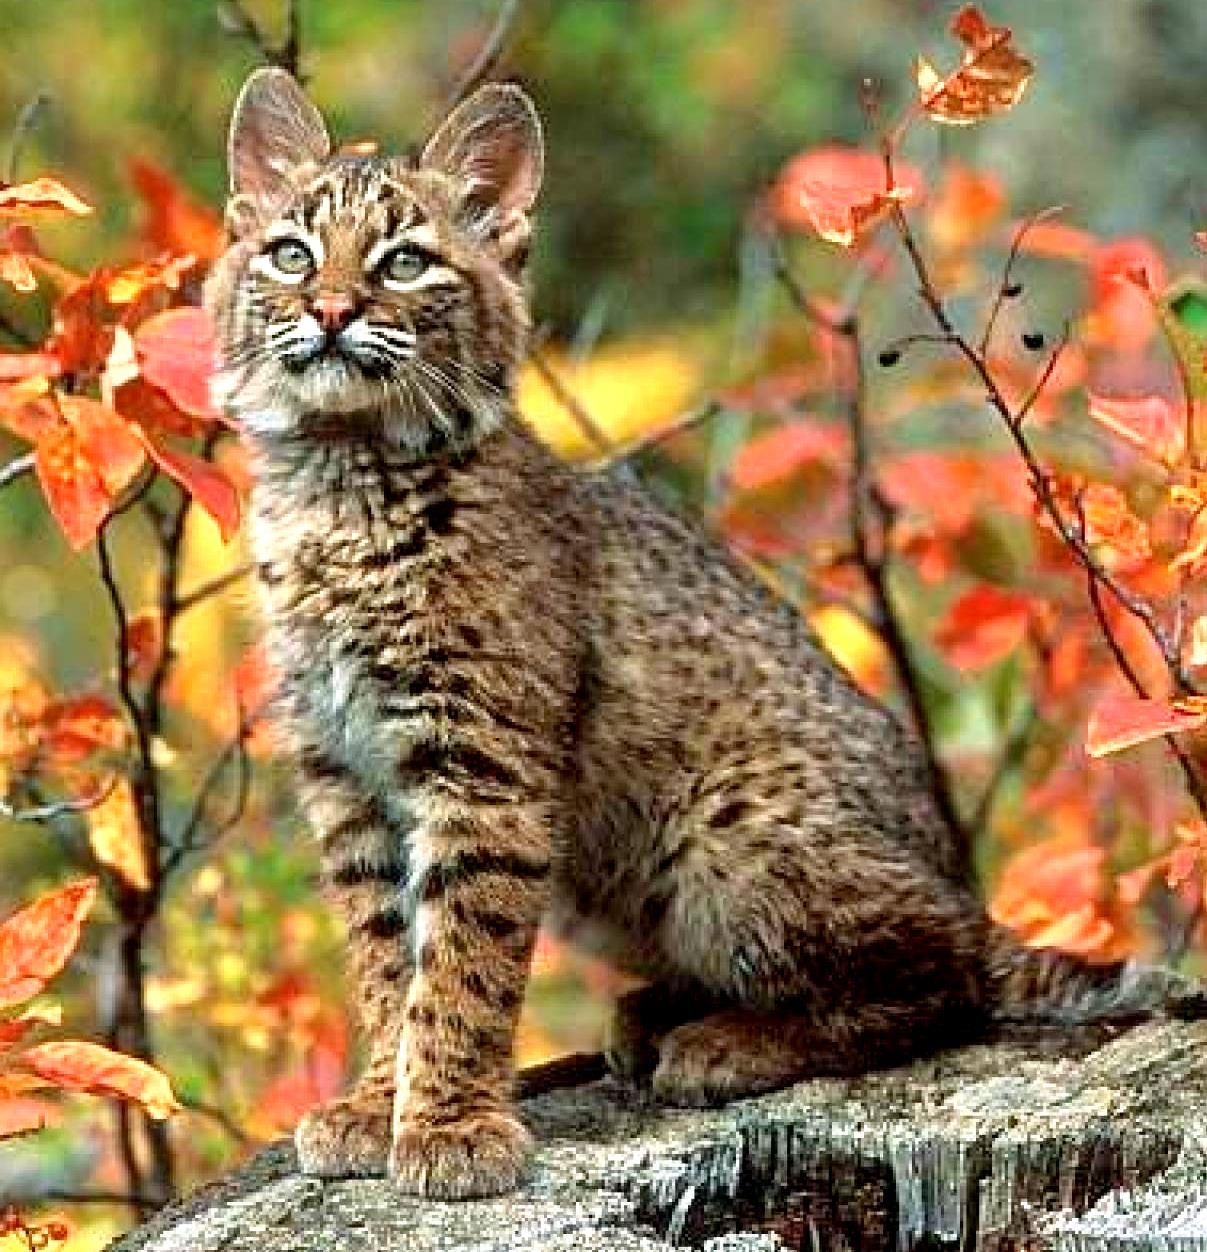 Andean Mountain / Highland Cat one of the rarest of wild